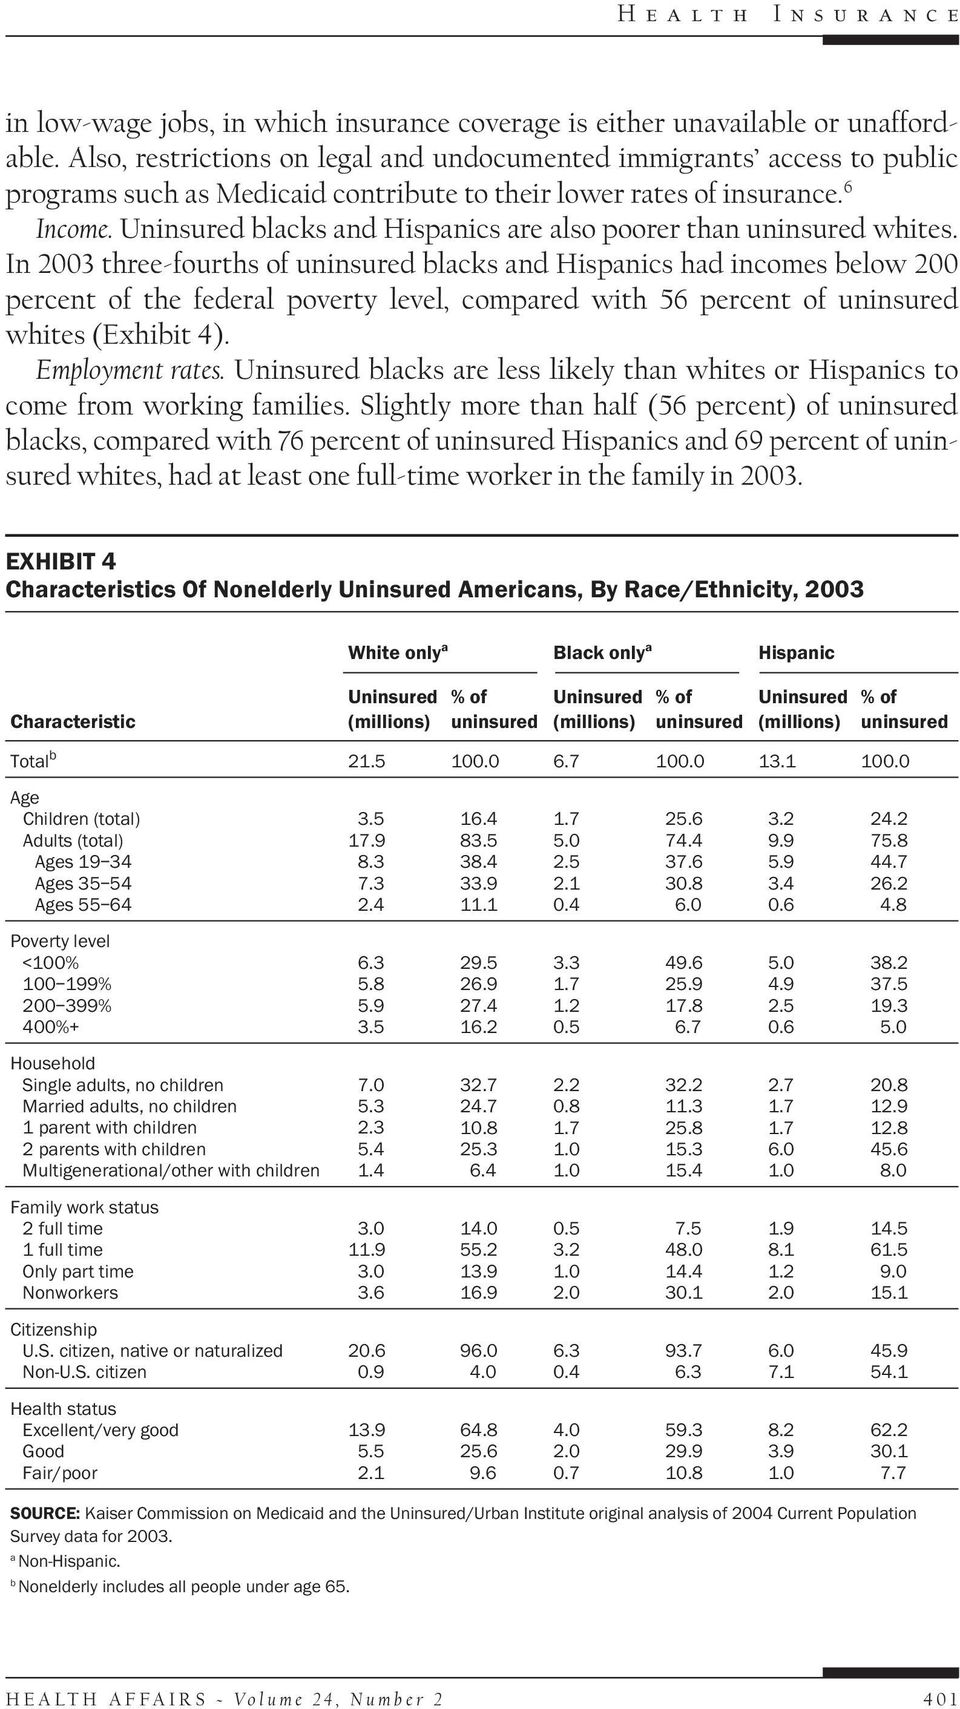 Uninsured blacks and Hispanics are also poorer than uninsured whites.